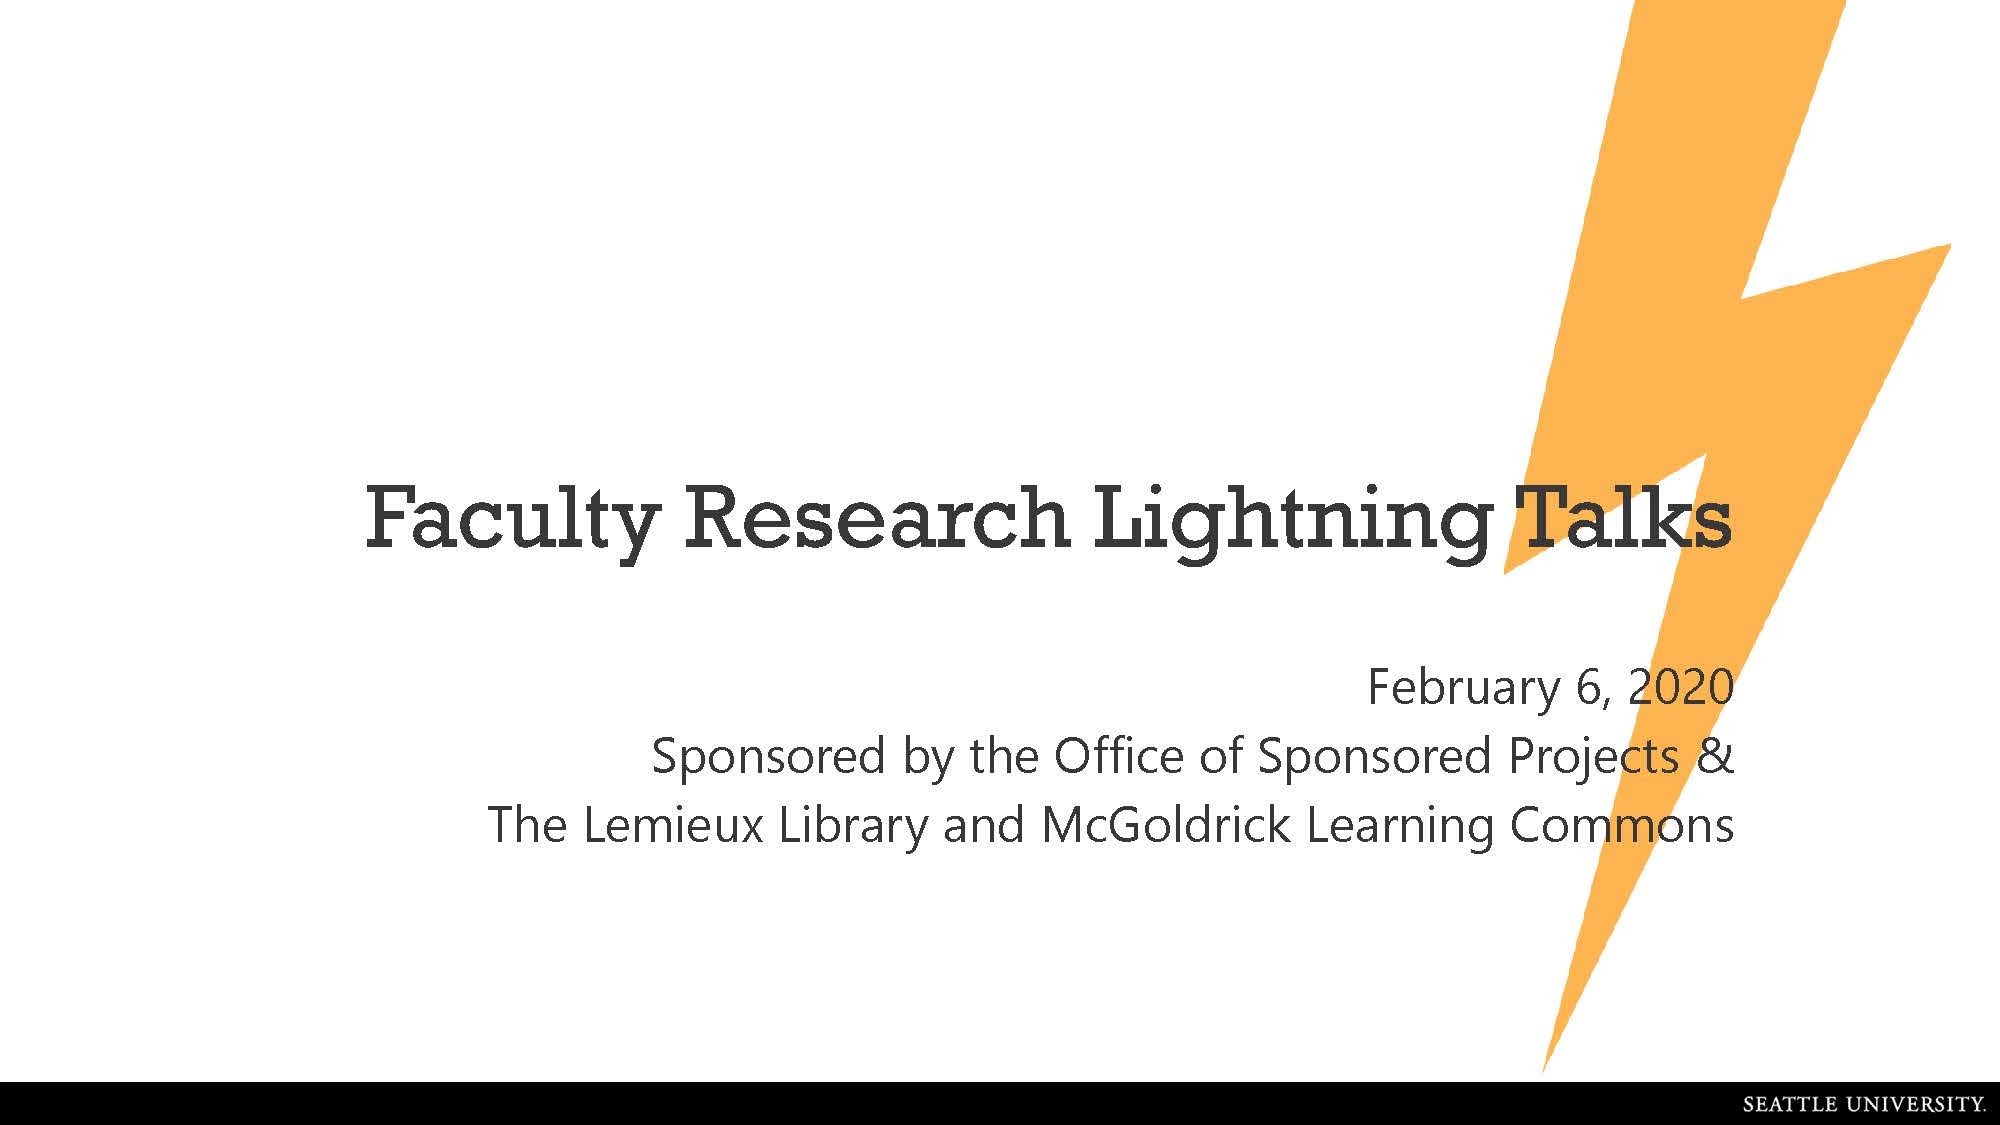 Faculty Lightning Talks 2020